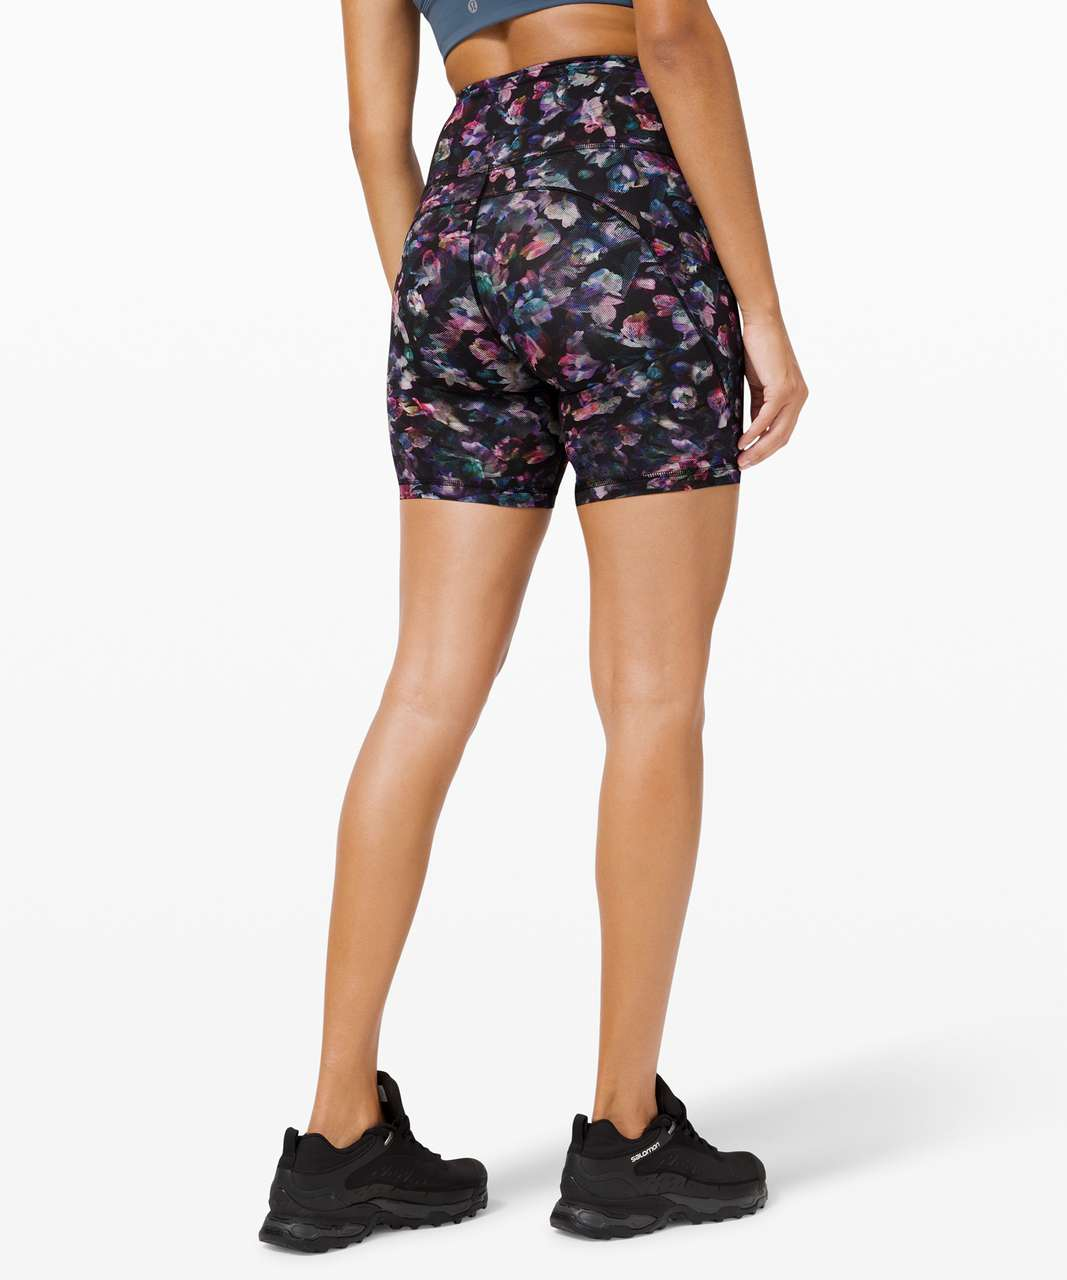 "Lululemon Fast and Free Short 6"" *Non-Reflective - Activate Floral Multi"